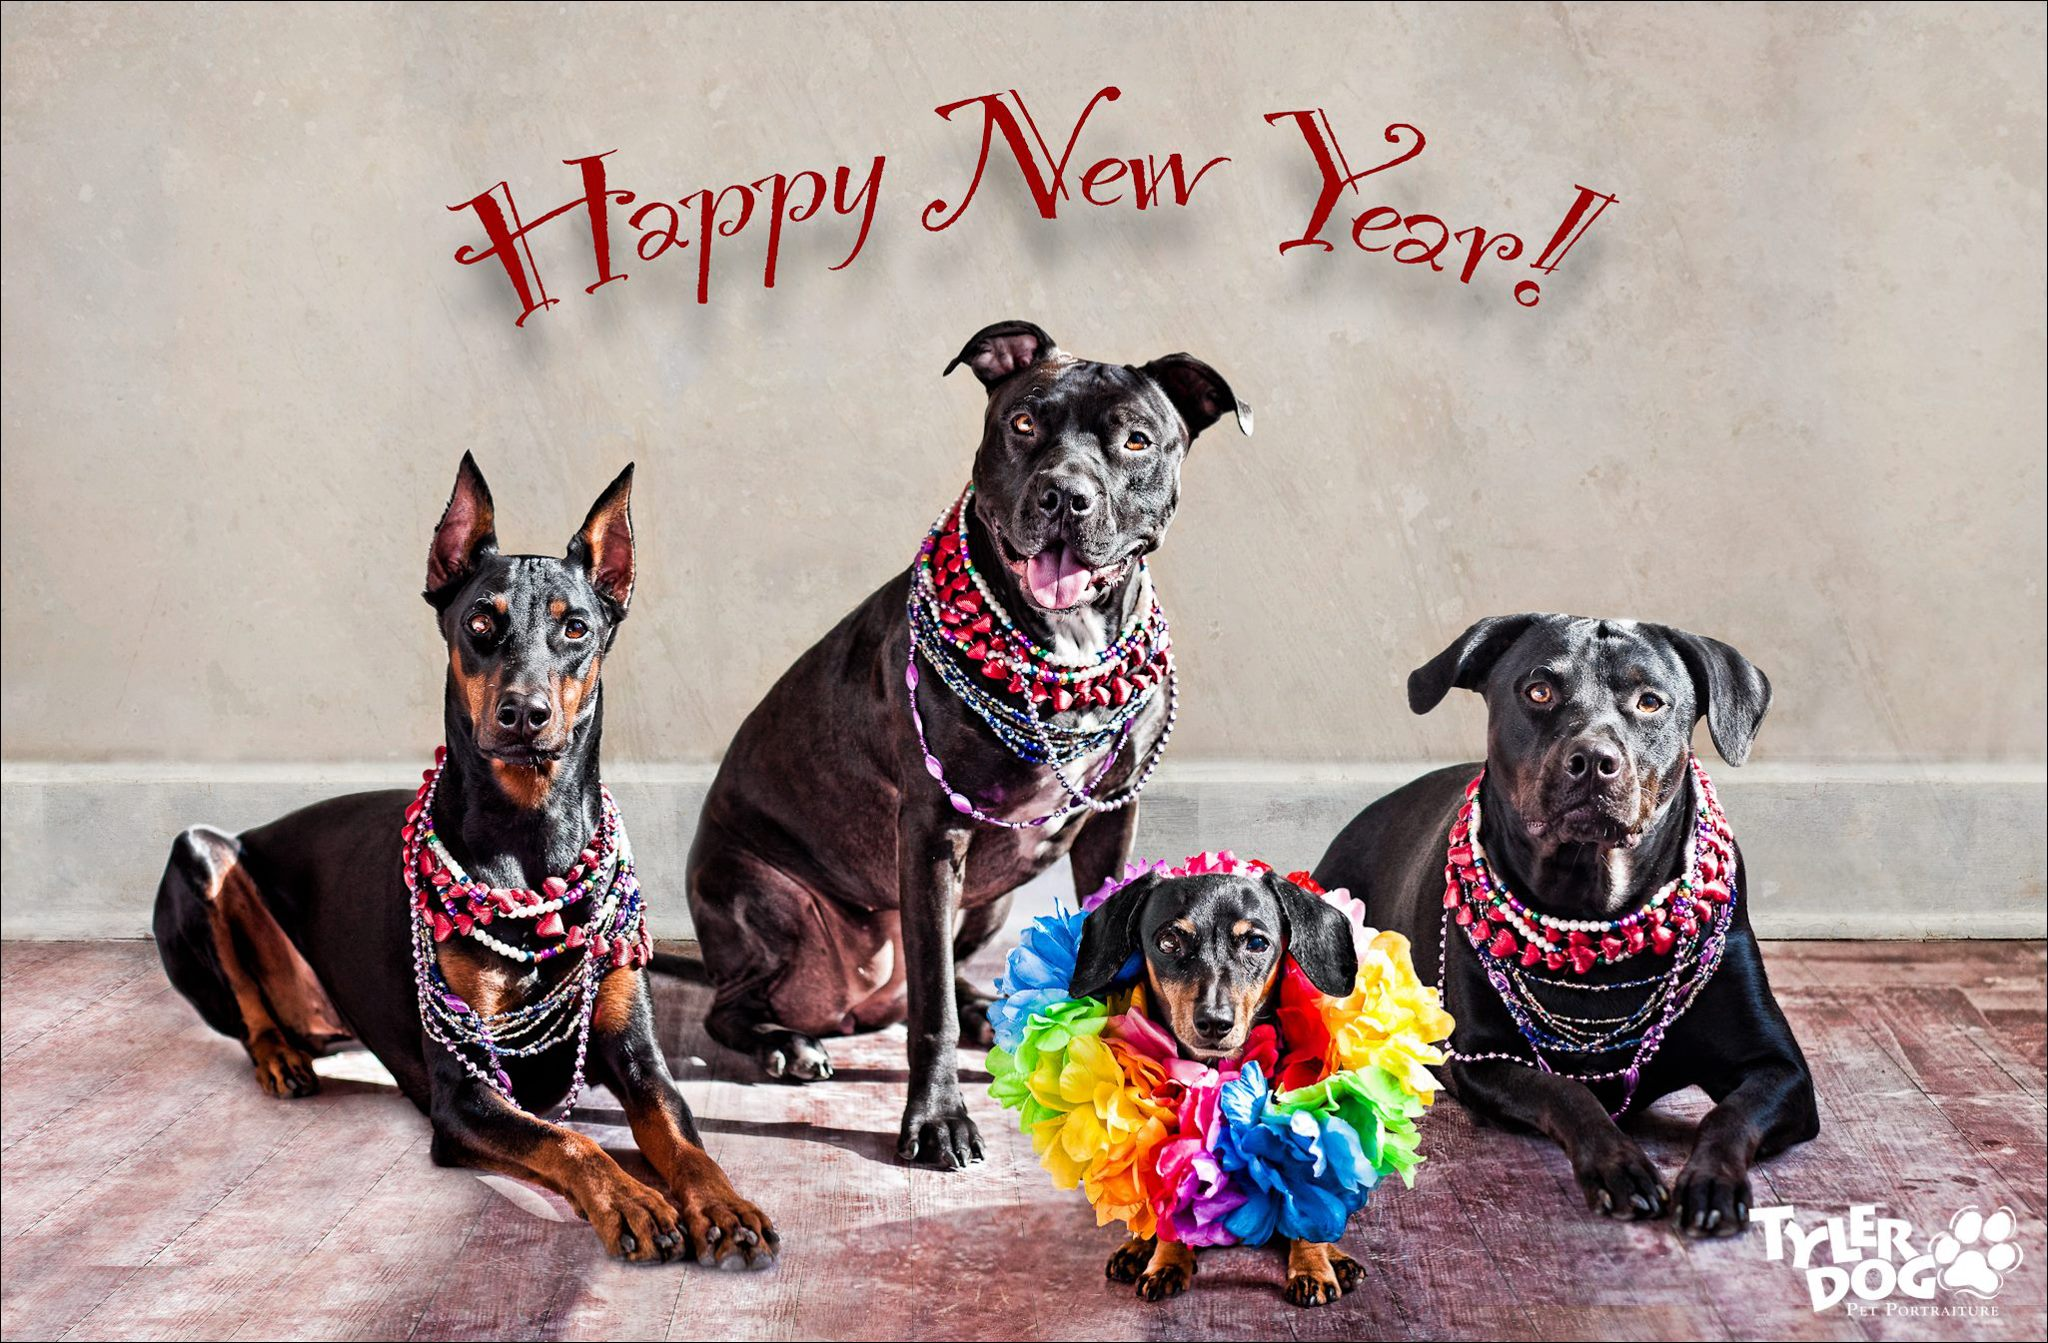 Happy New Year from Dopey Katie, Big Head, Jazzy the Amazing Wiener and Maggie Monster aka Katie, Xena, Jazzy and Maggie.